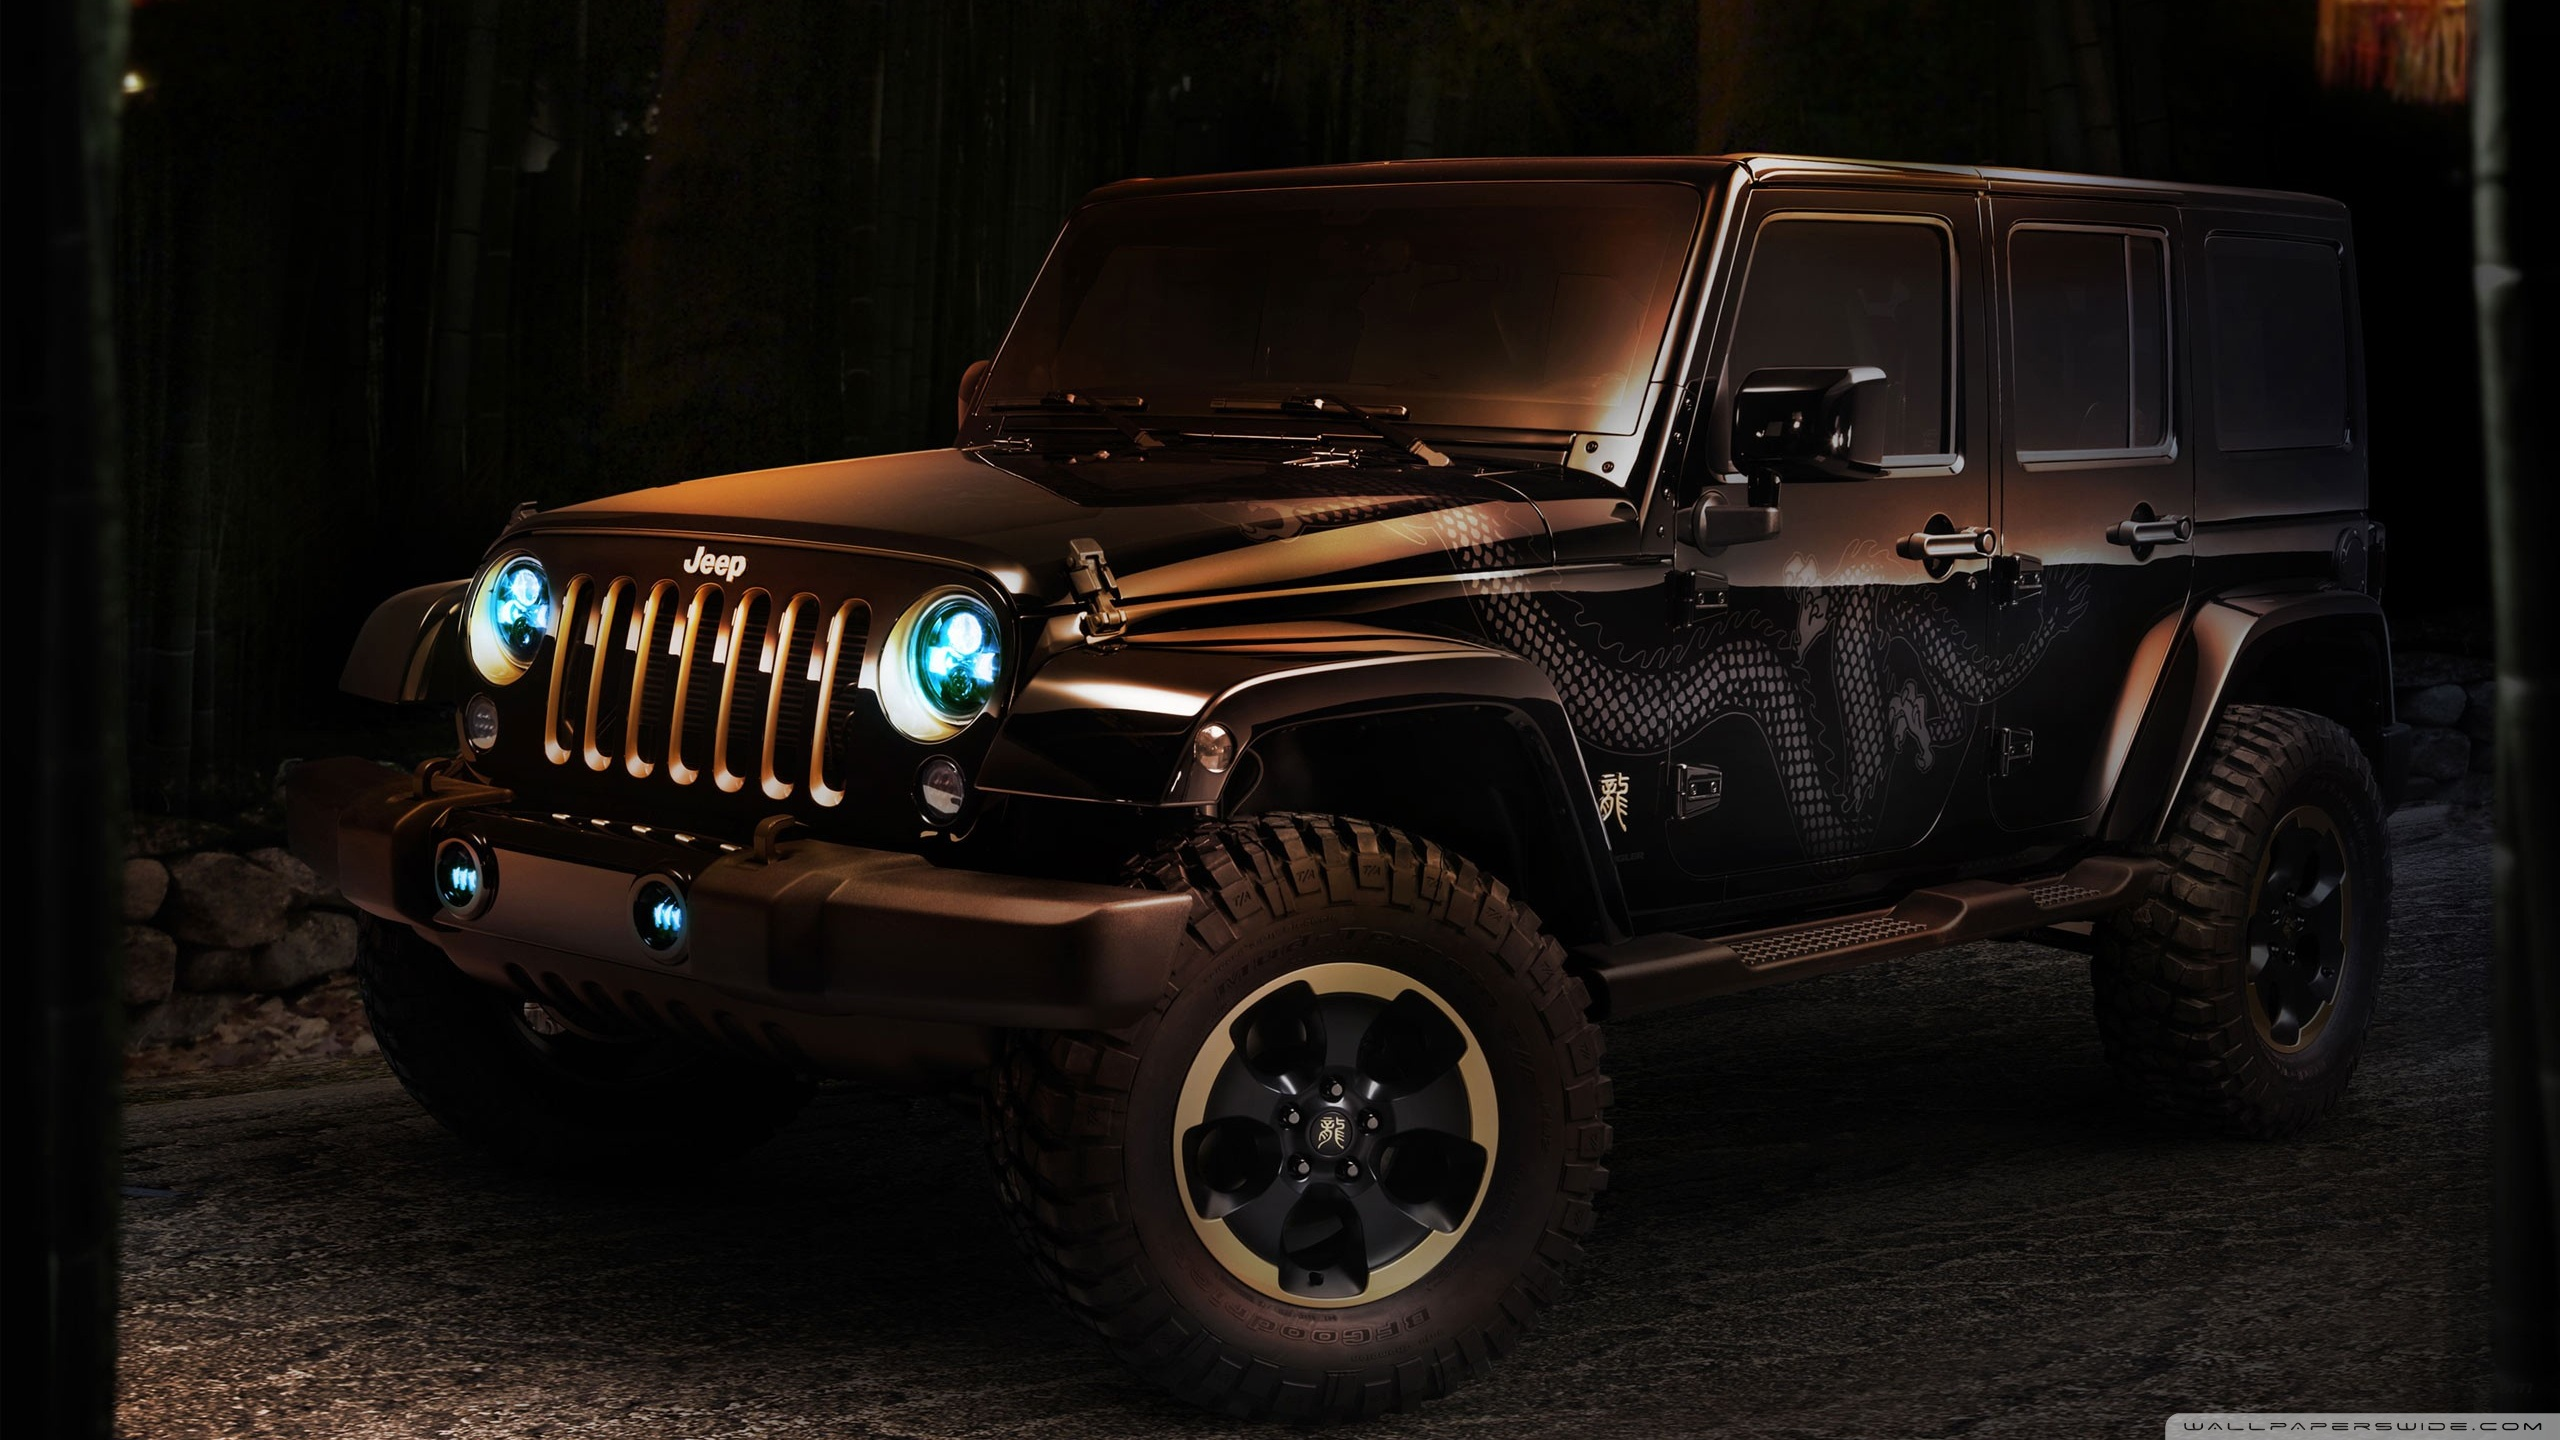 jeep wrangler concept car ❤ 4k hd desktop wallpaper for 4k ultra hd